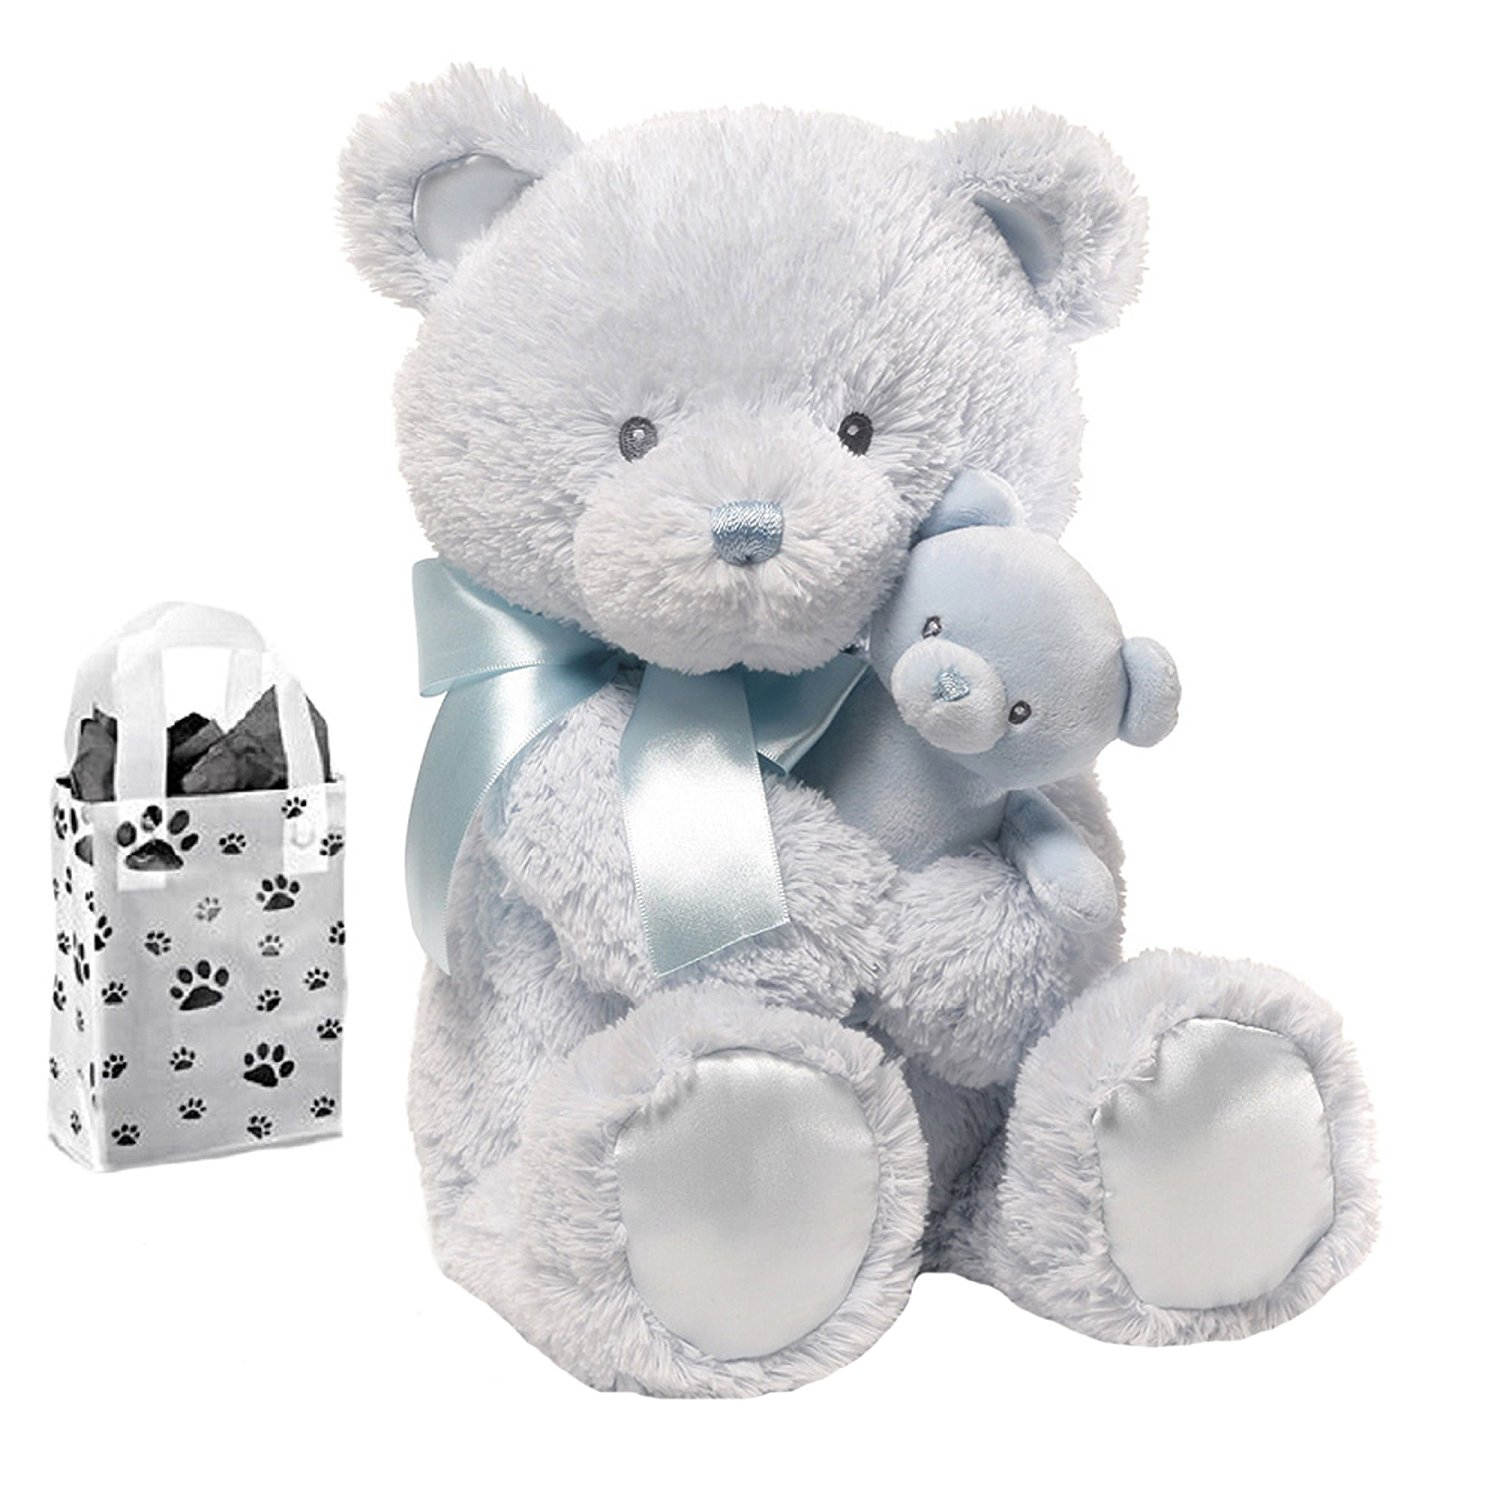 fb61b62a4653 Baby Gund Momma & Baby Bear Rattle Blue Combo 15 Inches   Soft Toys  Singapore